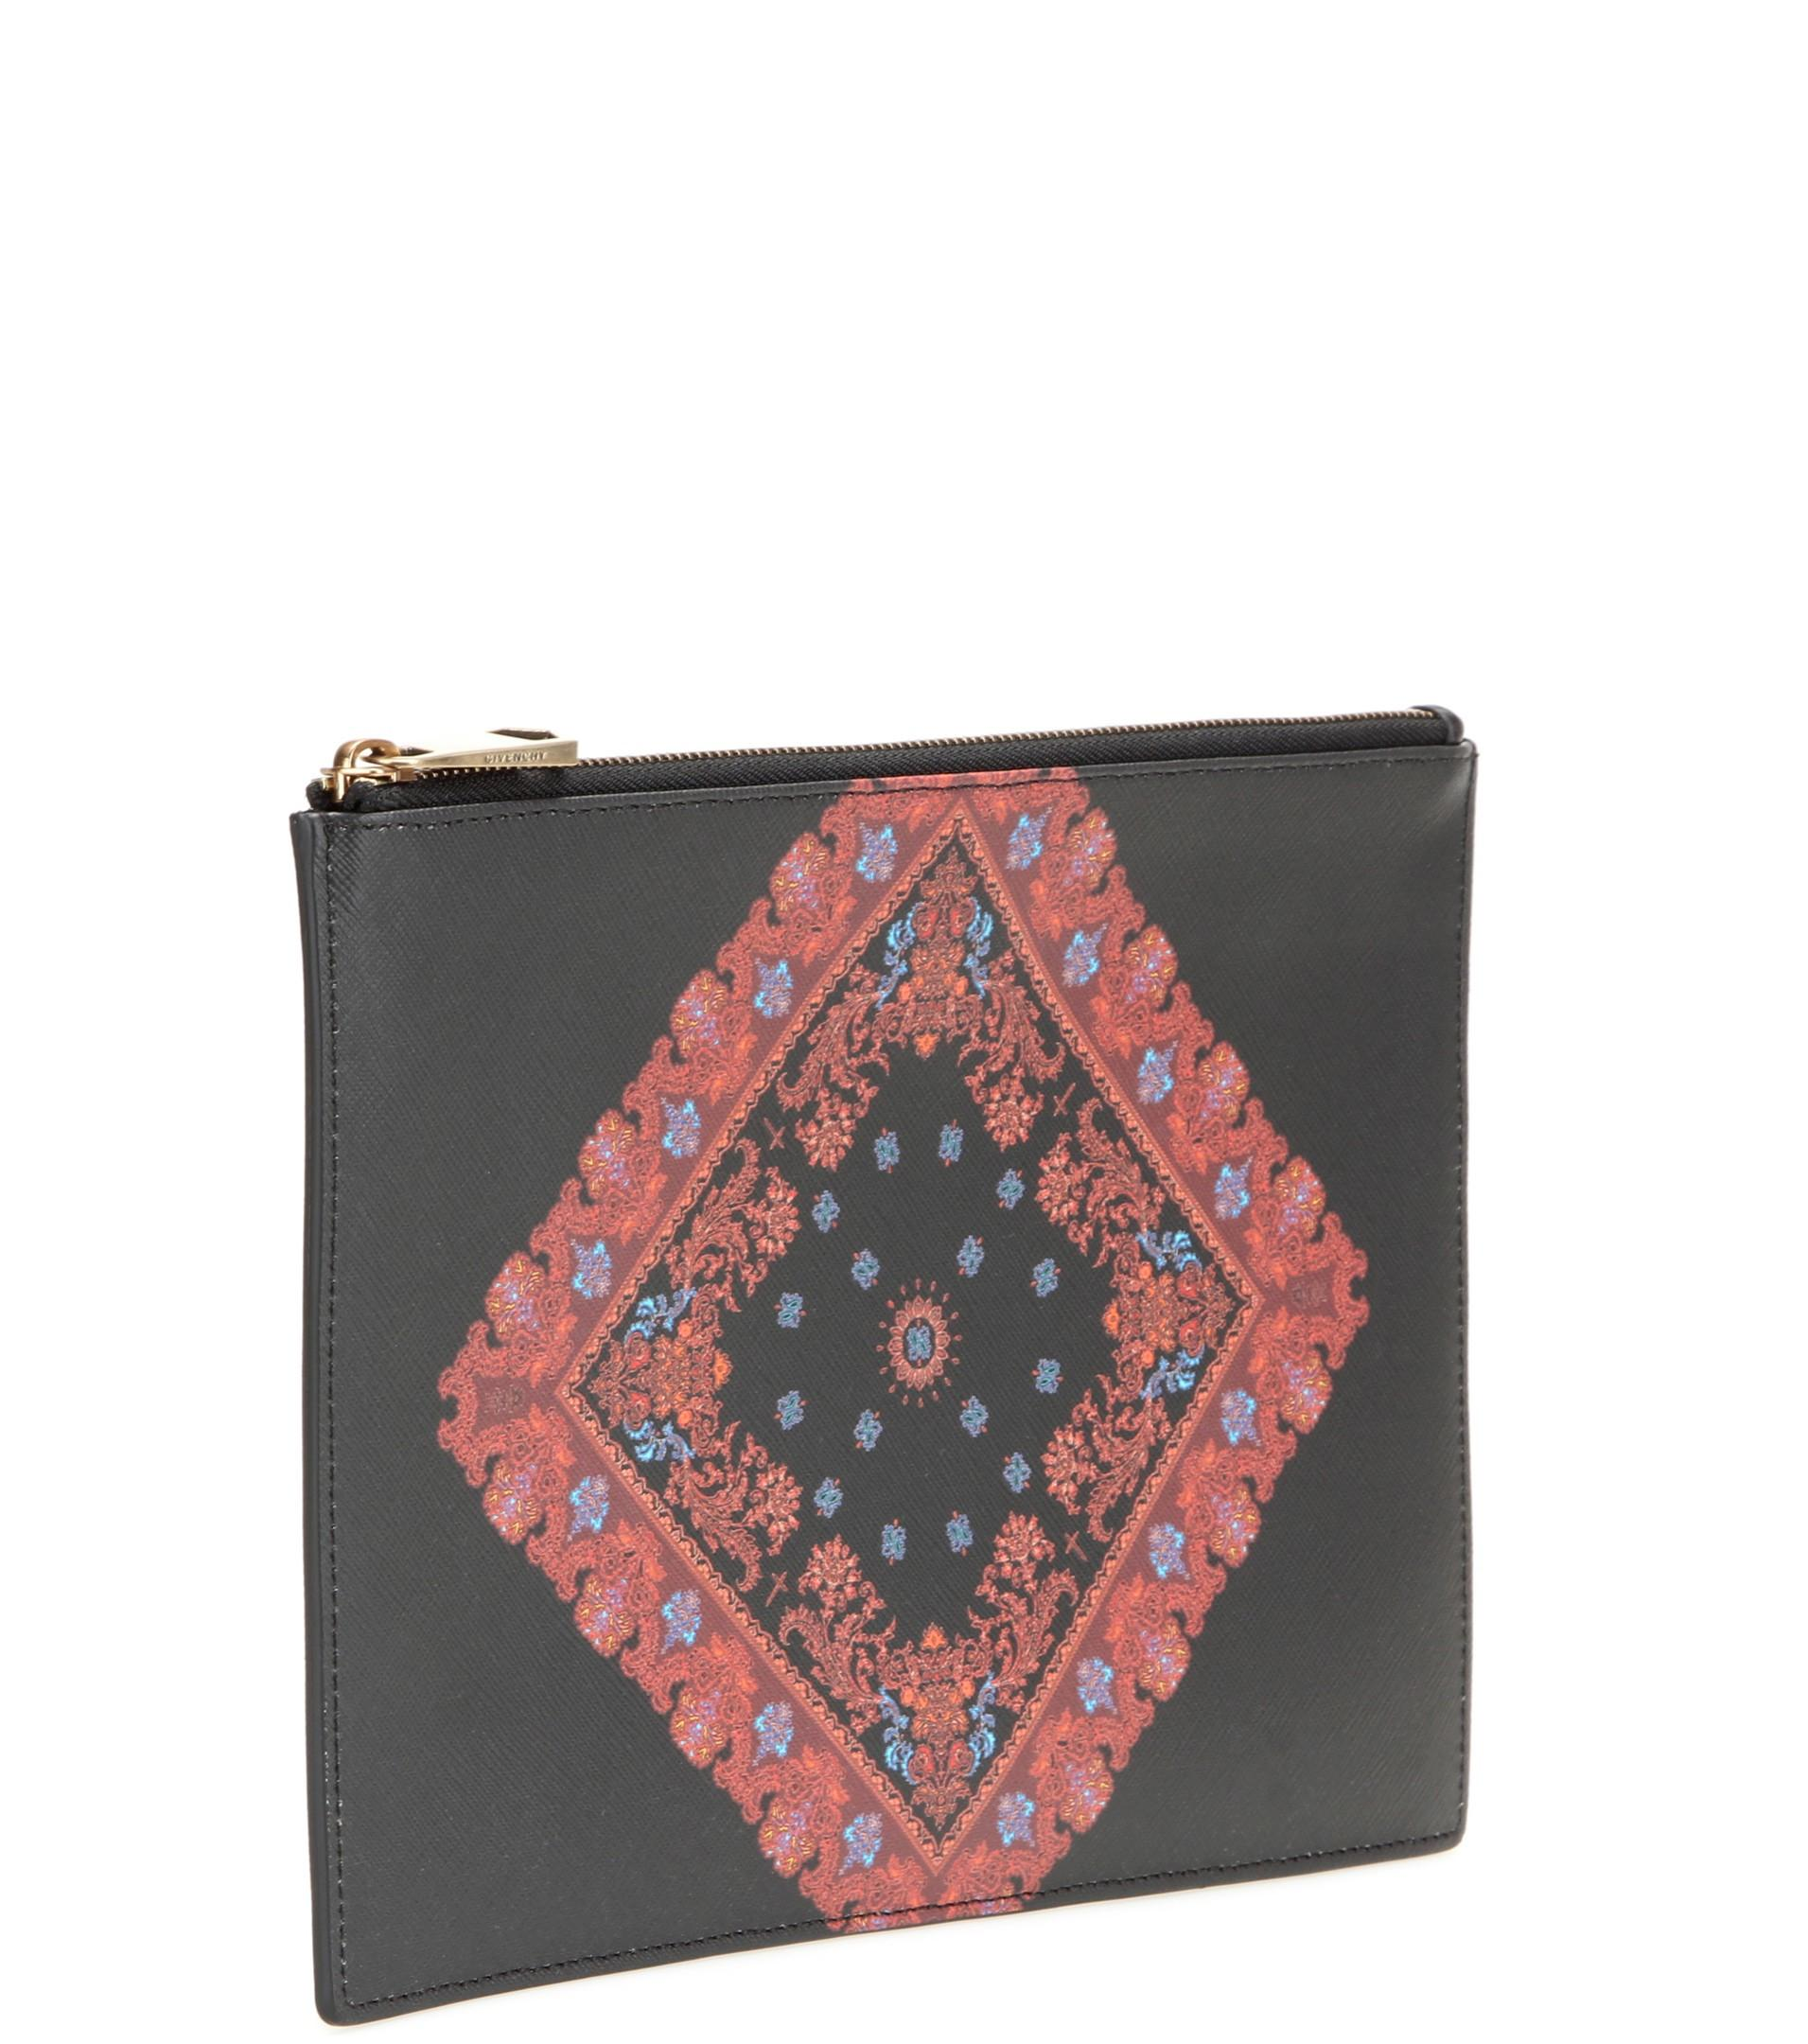 Givenchy Iconic Print Clutch Black Lyst